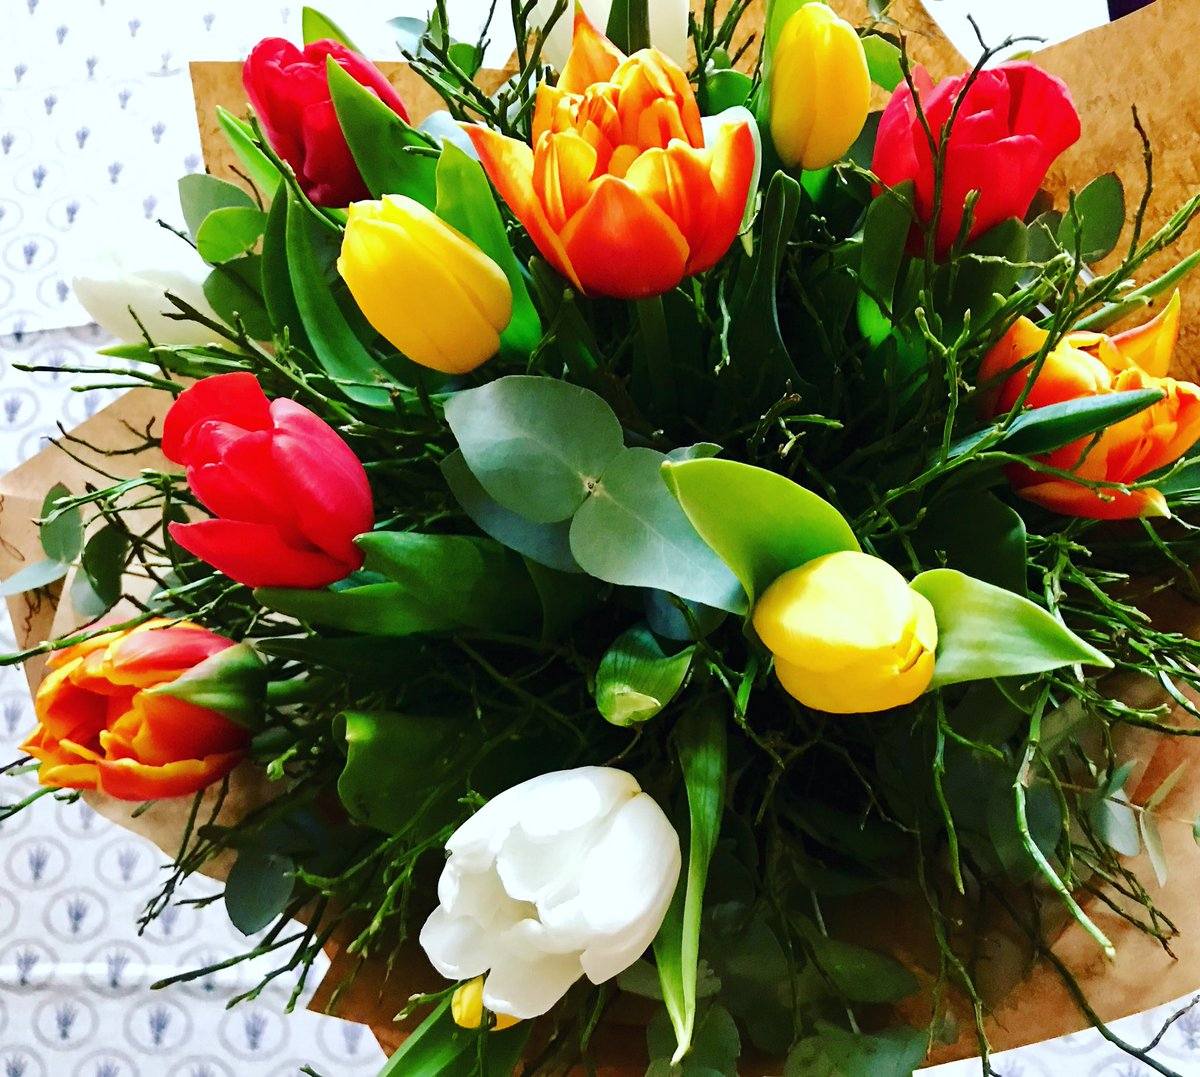 Feels like the spring is coming.. can't wait.. 💐 #tulips #flowers #colors #home rRn9PJx